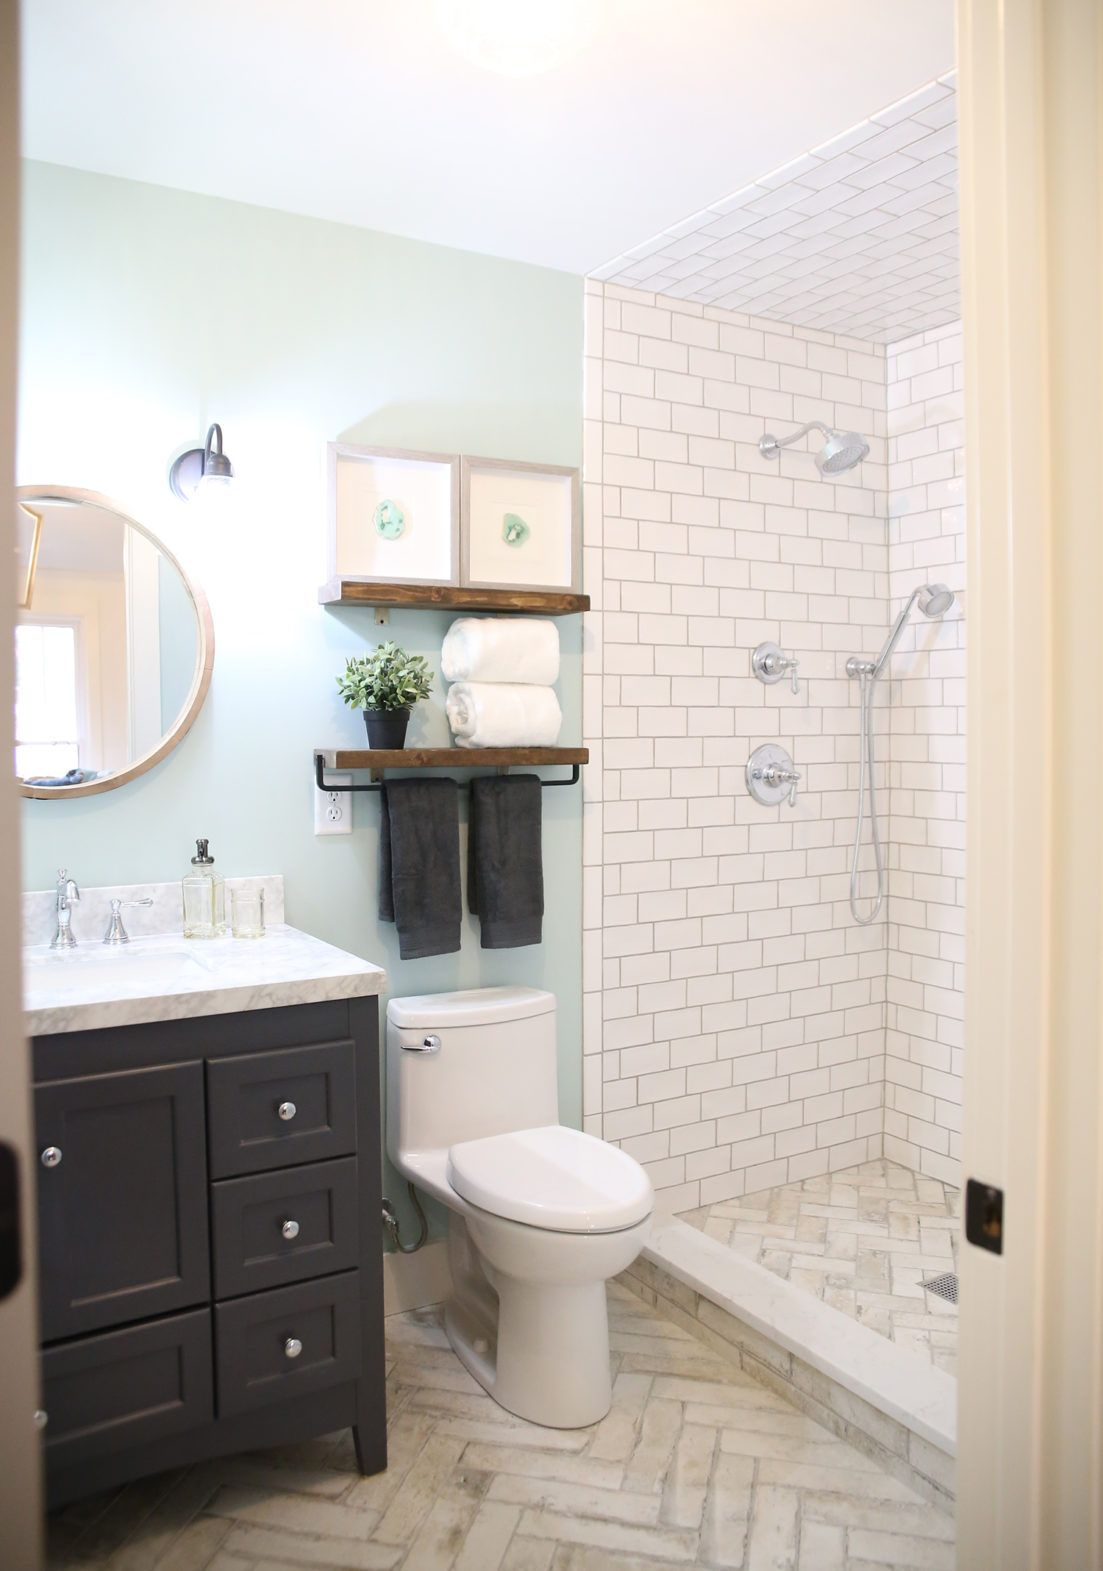 Garage To Airbnb A Multifunctional Space The Handmade Home Bathrooms Remodel Multifunctional Space Small Bathroom